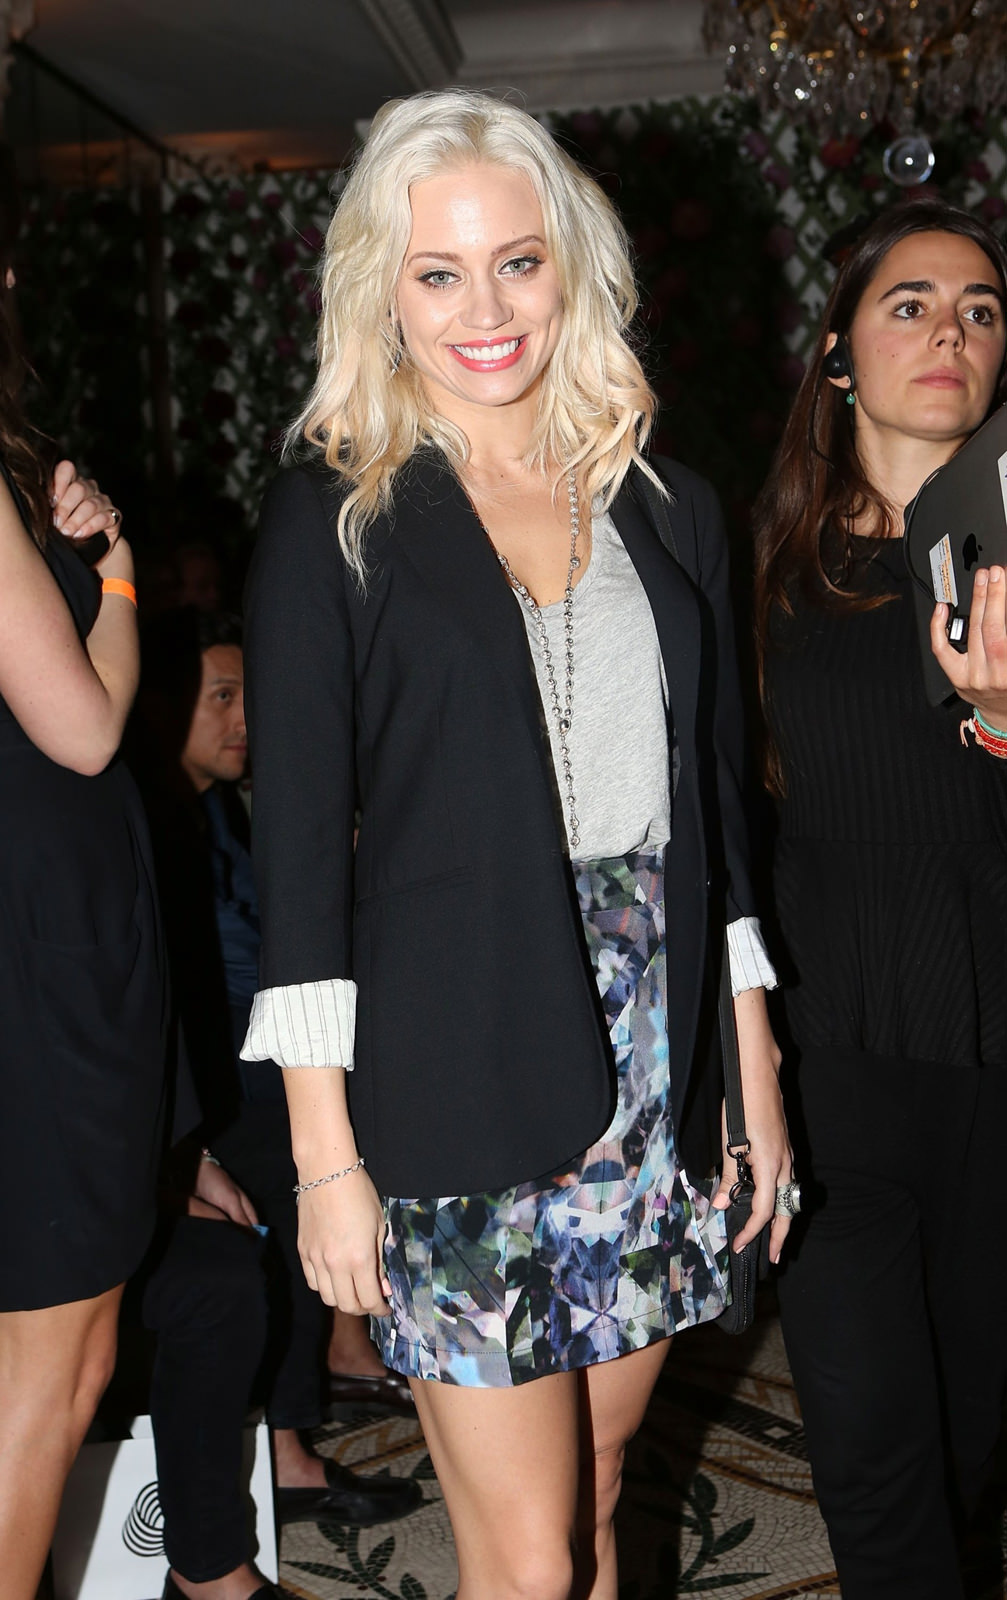 Kimberly Wyatt Photo Gallery